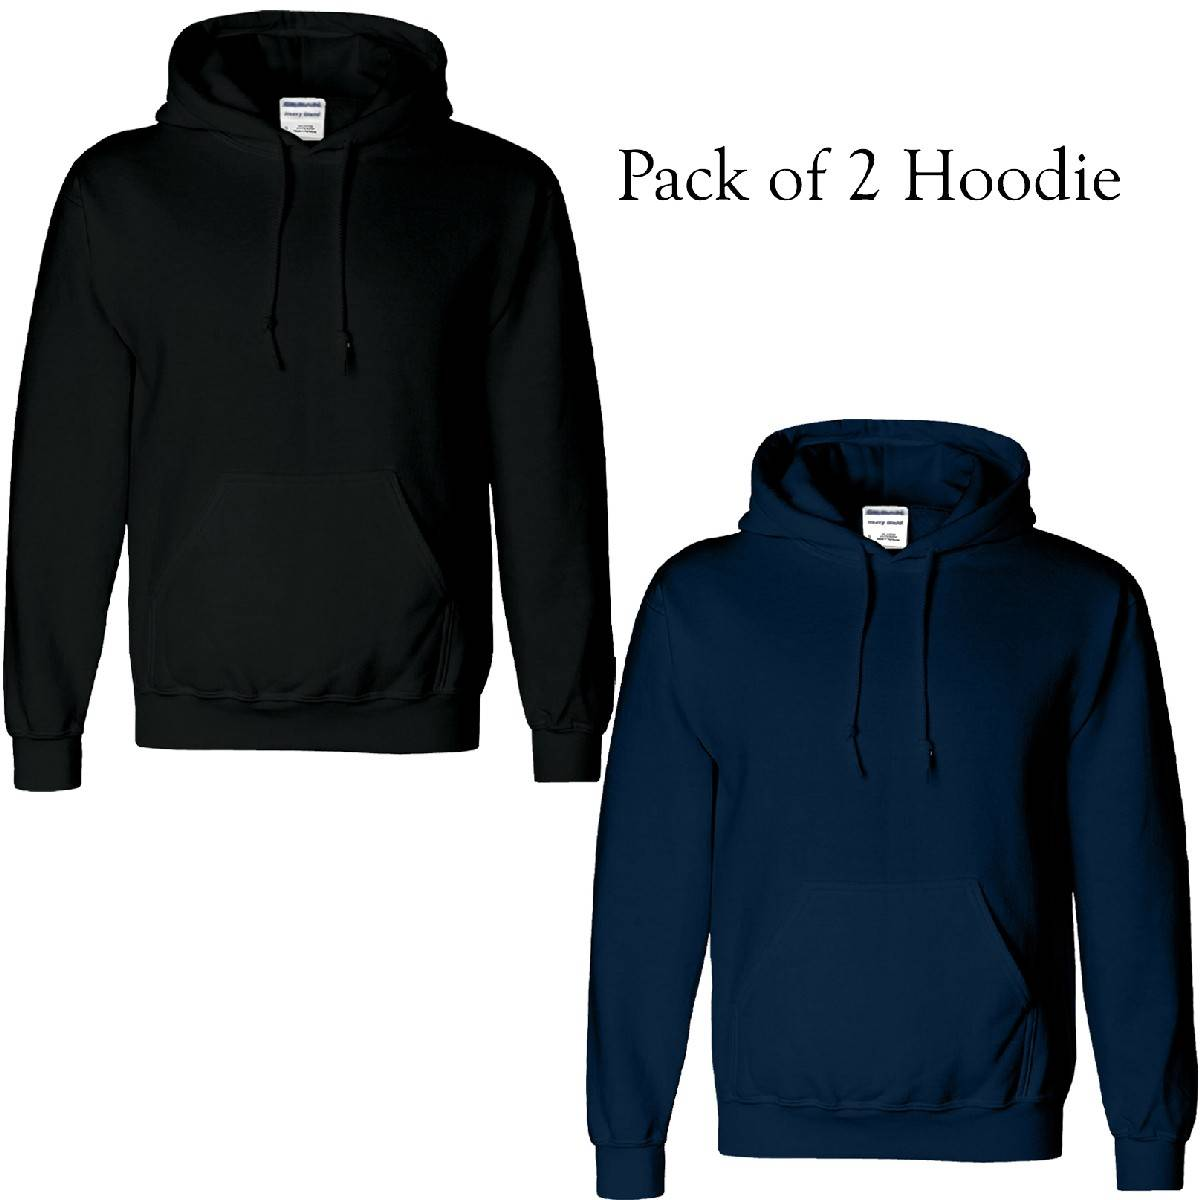 Pack of 2 New Plain Mens Hoodie Polycotton Black Navy Adult Casual Hooded Pullover